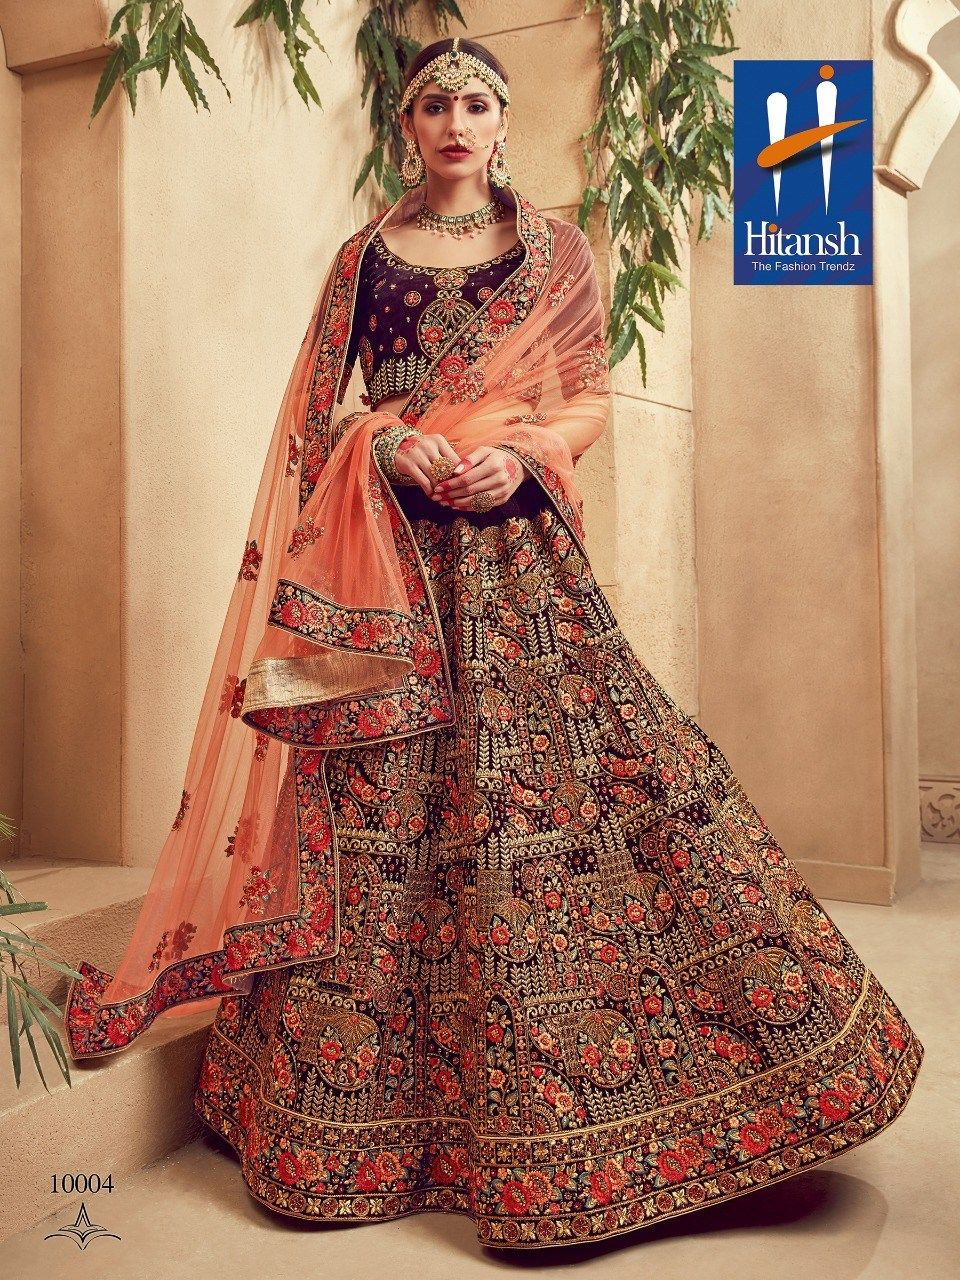 711dc00365 HITANSH FASHION THE ROYAL BRIDE DESIGNER WEDDING LEHENGA CHOLI COLLECTION  MANUFACTURER WHOLESALER AND EXPORTER OF INDIAN